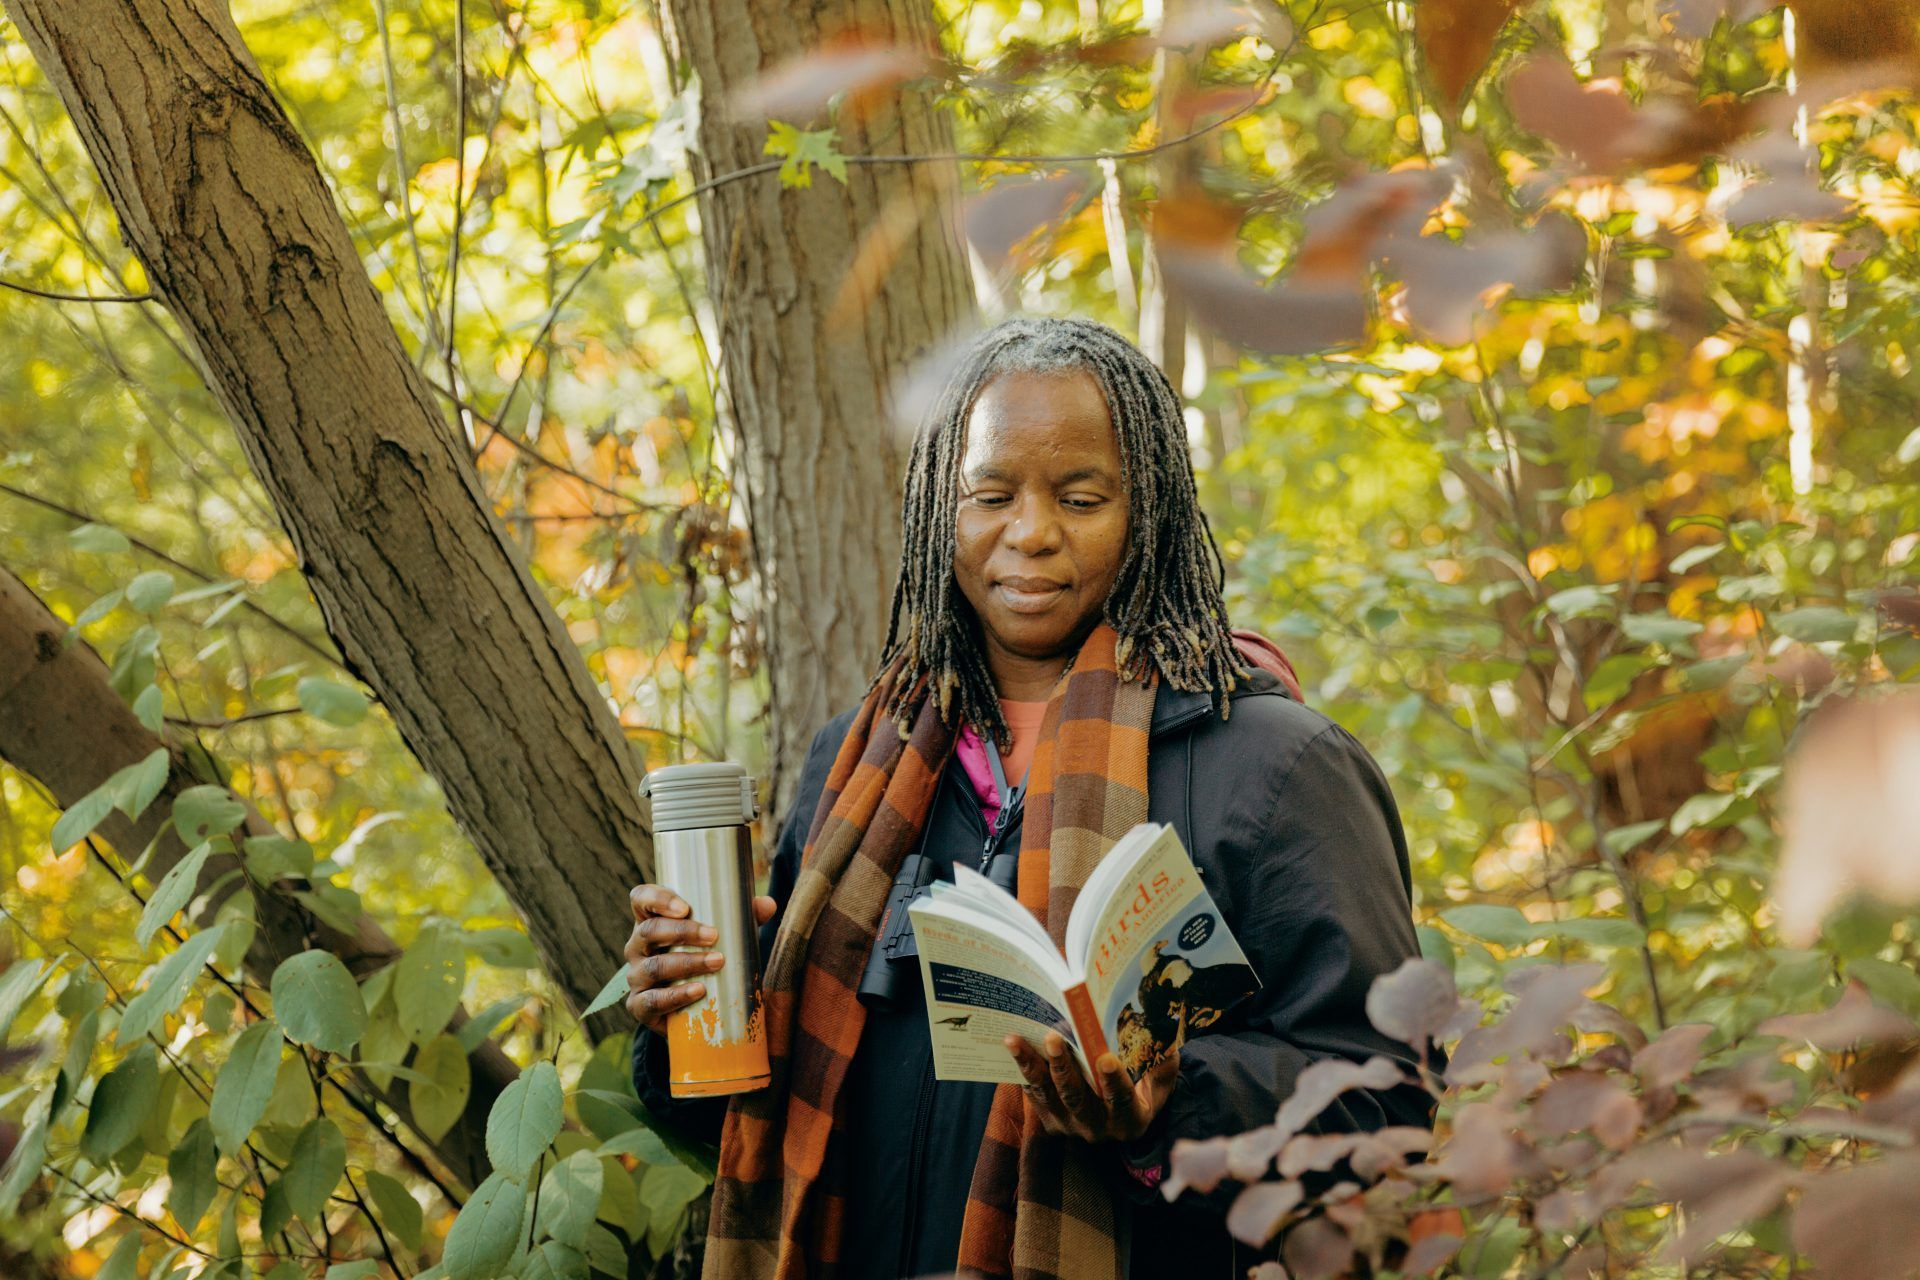 Jacqueline L. Scott, founder of Black Outdoors. Credit: Broadview.org